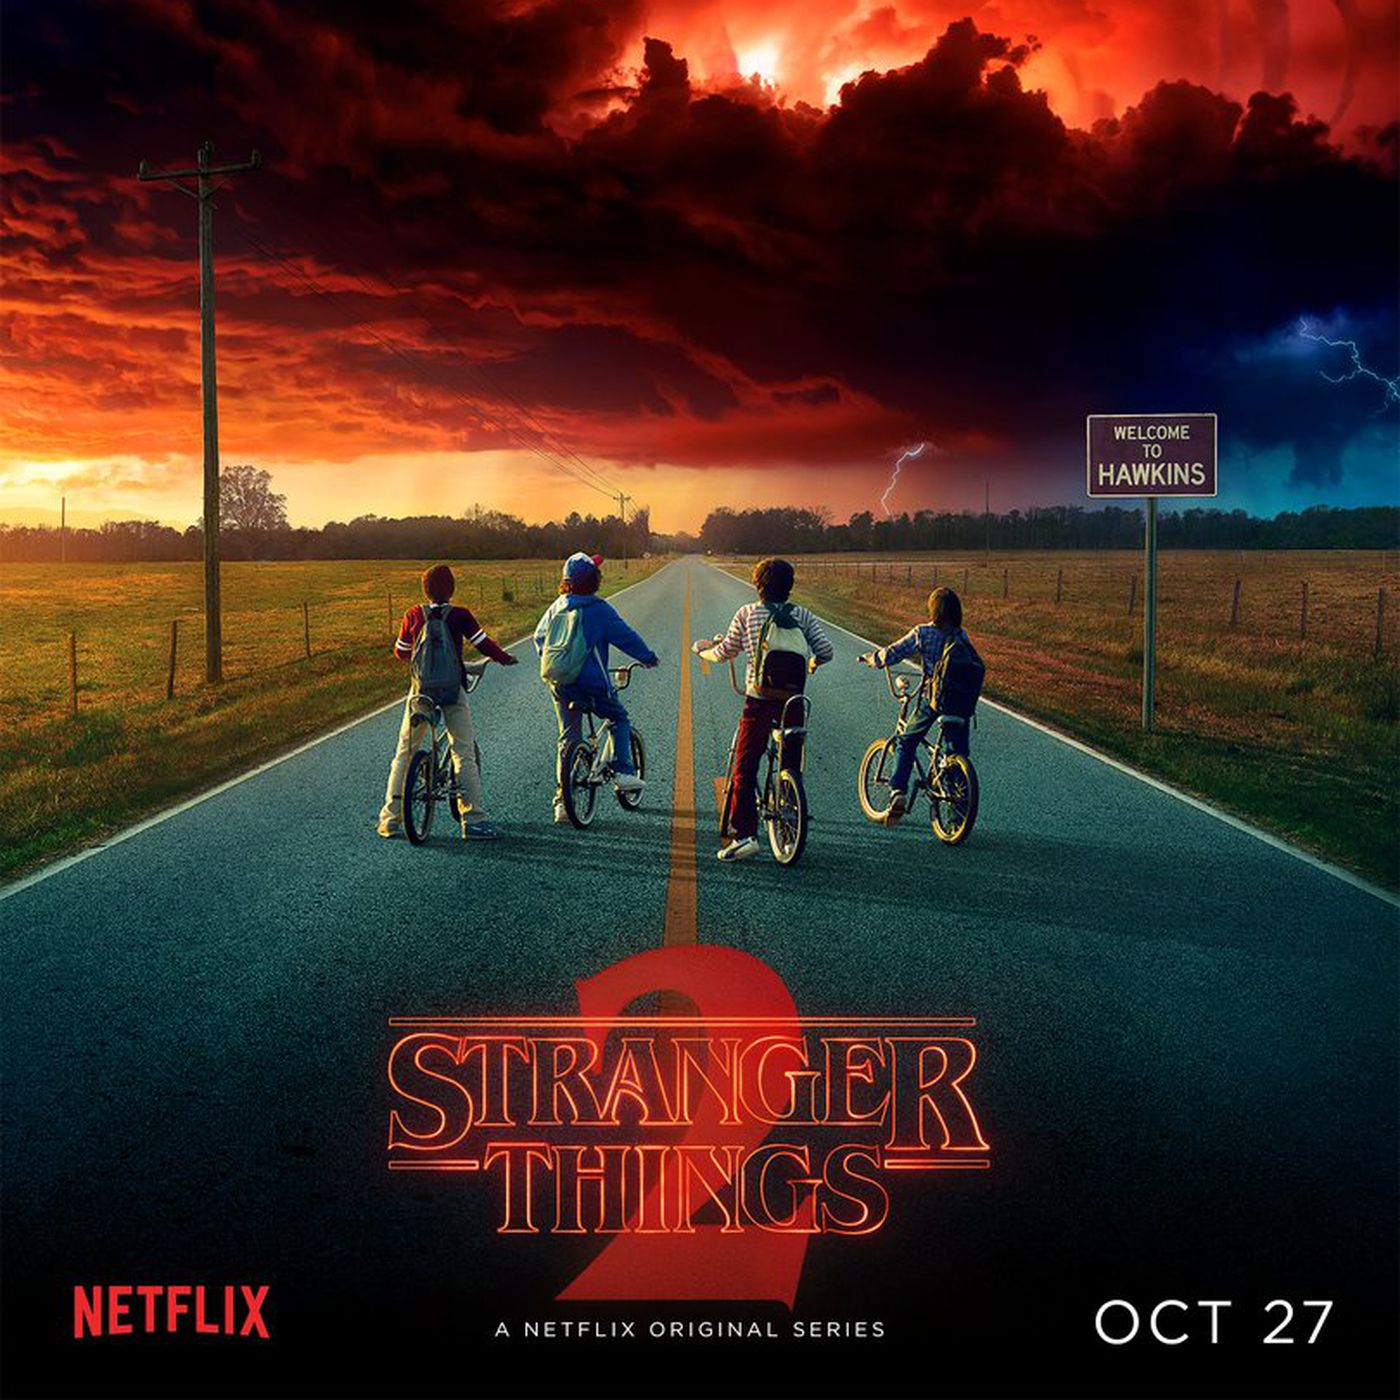 The Stranger Things 2 Poster Hints At More Ways The Show Will Borrow From Stephen King The Verge Men's netflix stranger things group shot fireworks poster hoodie. the stranger things 2 poster hints at